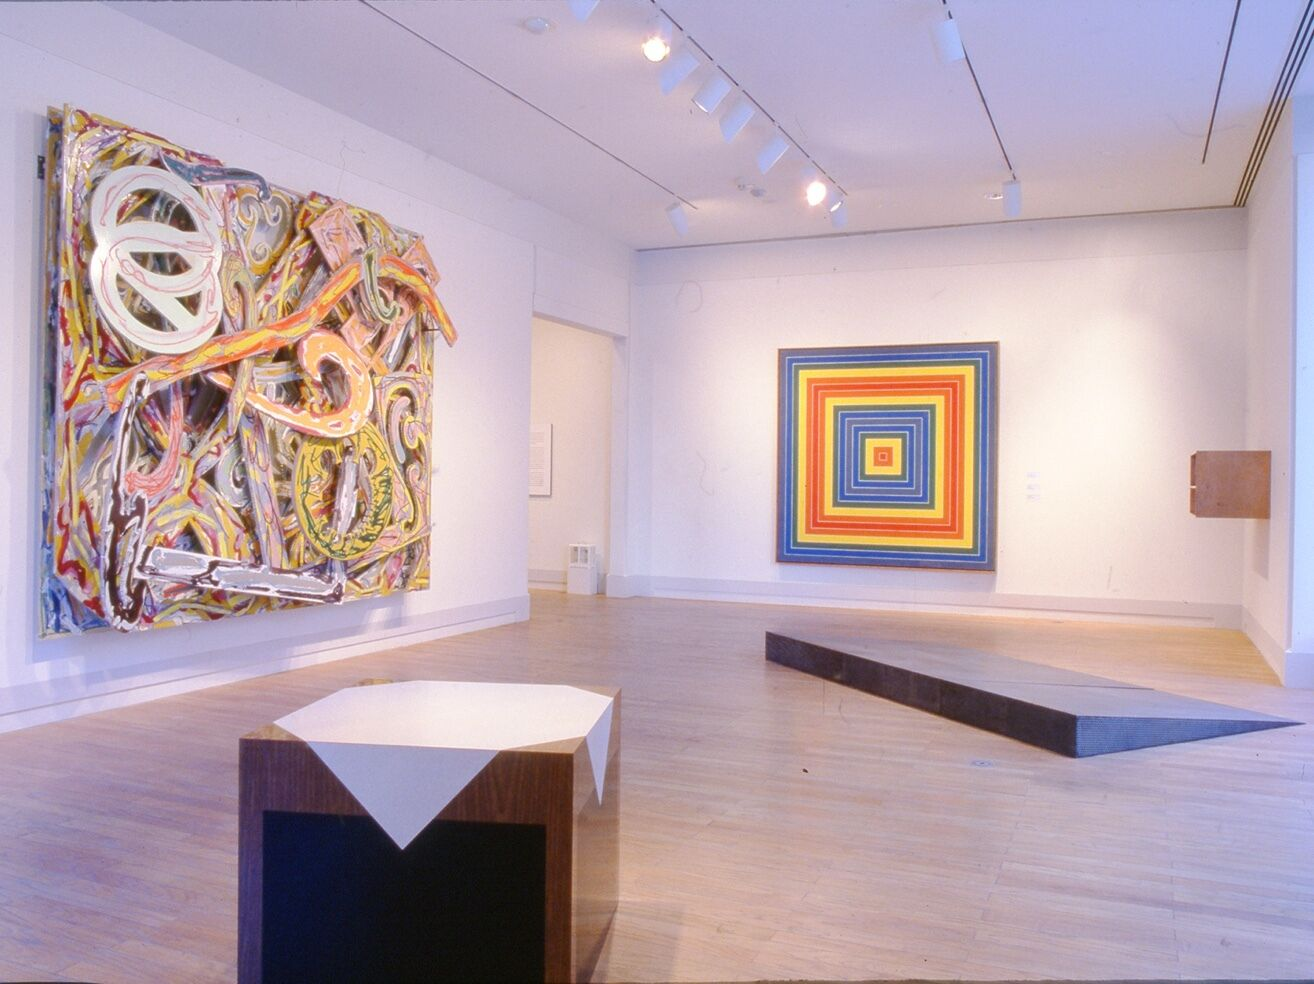 A gallery room with several pieces mounted on the wall and situated on the floor.